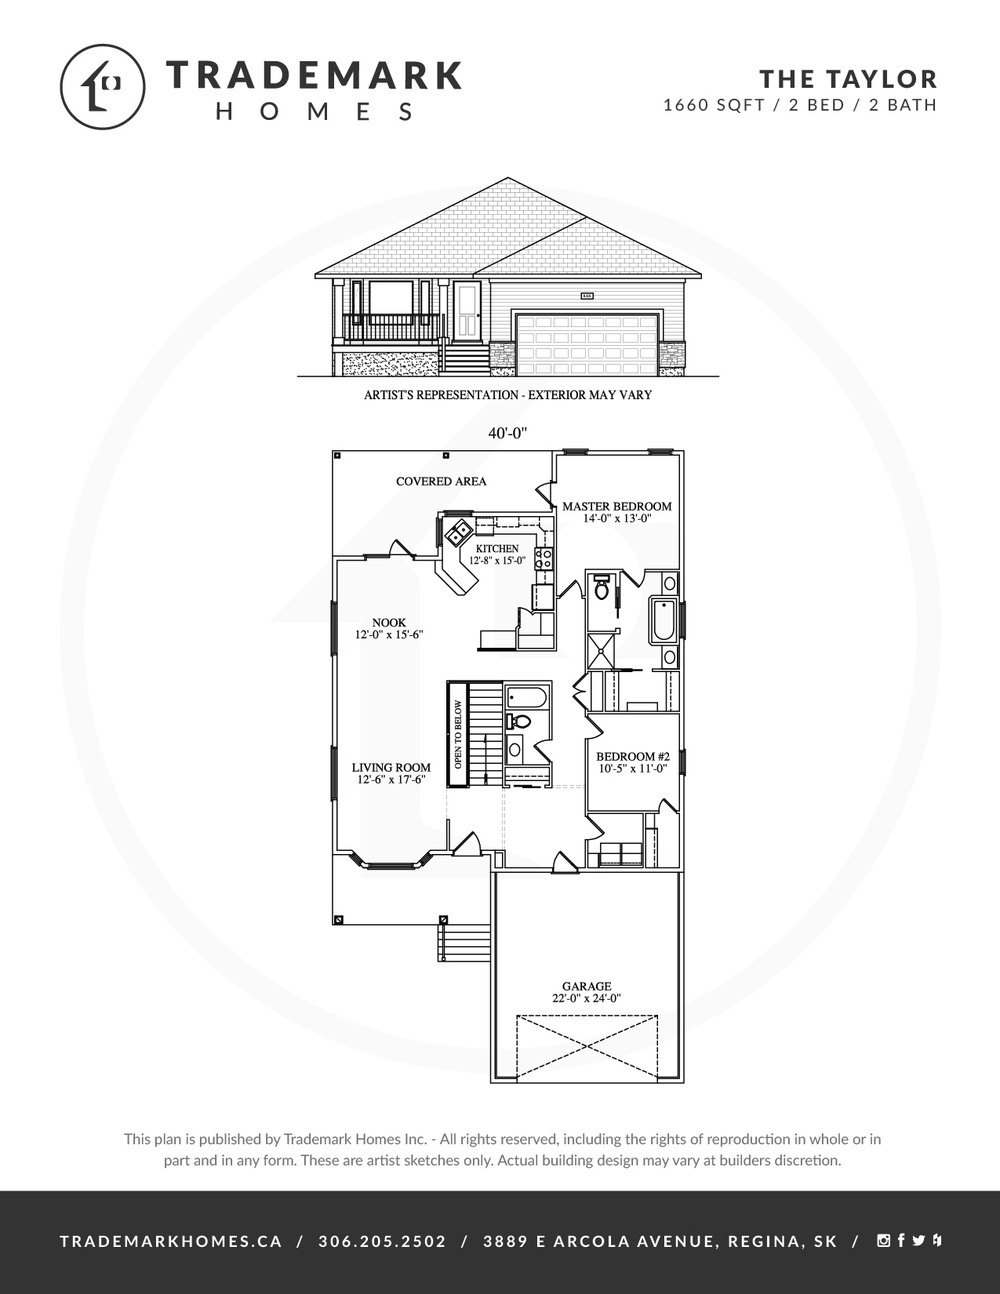 trademark homes floor plans homes free download home plans